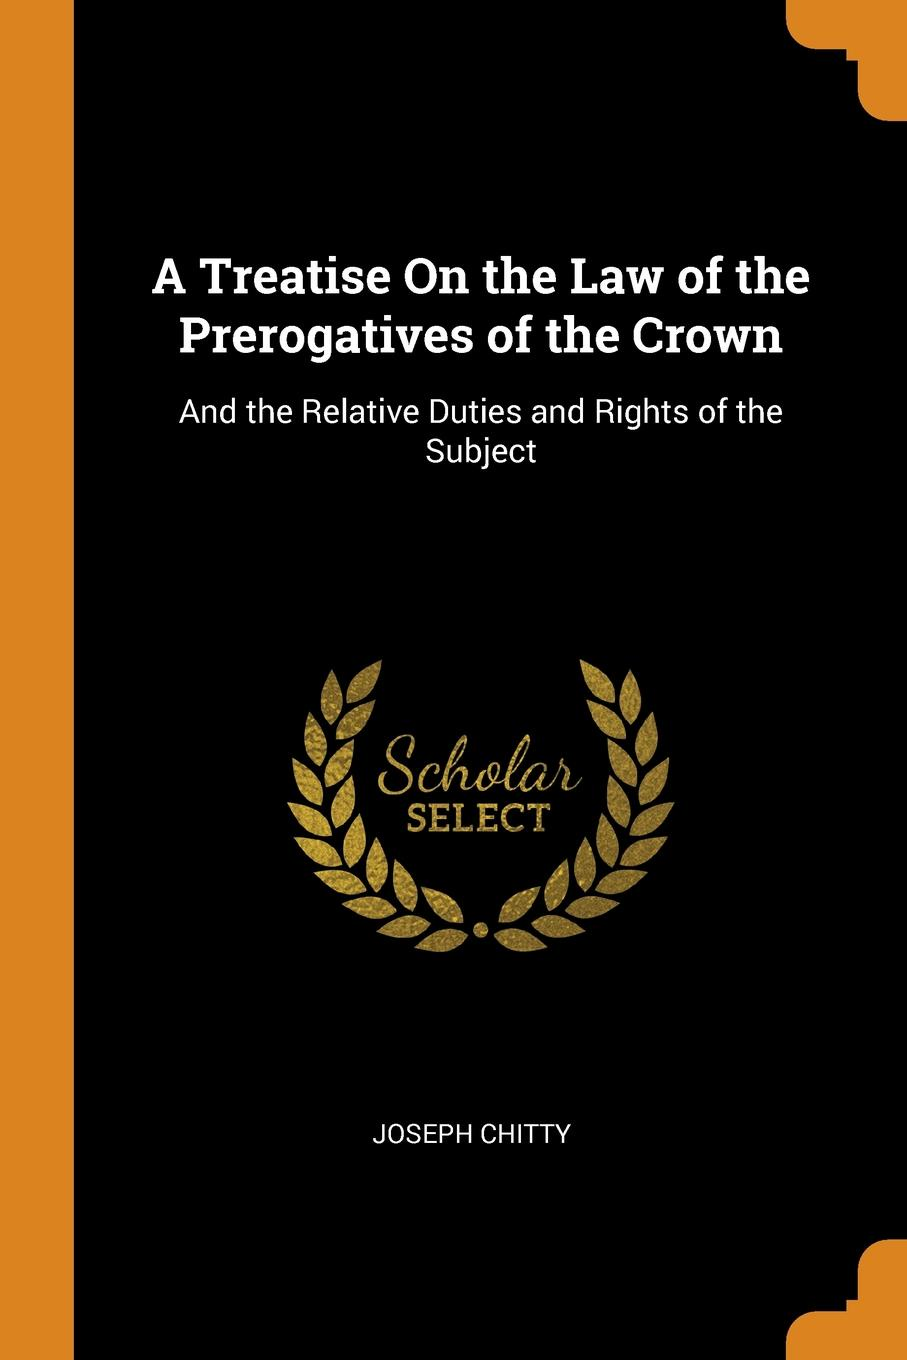 A Treatise On the Law of the Prerogatives of the Crown. And the Relative Duties and Rights of the Subject. Joseph Chitty